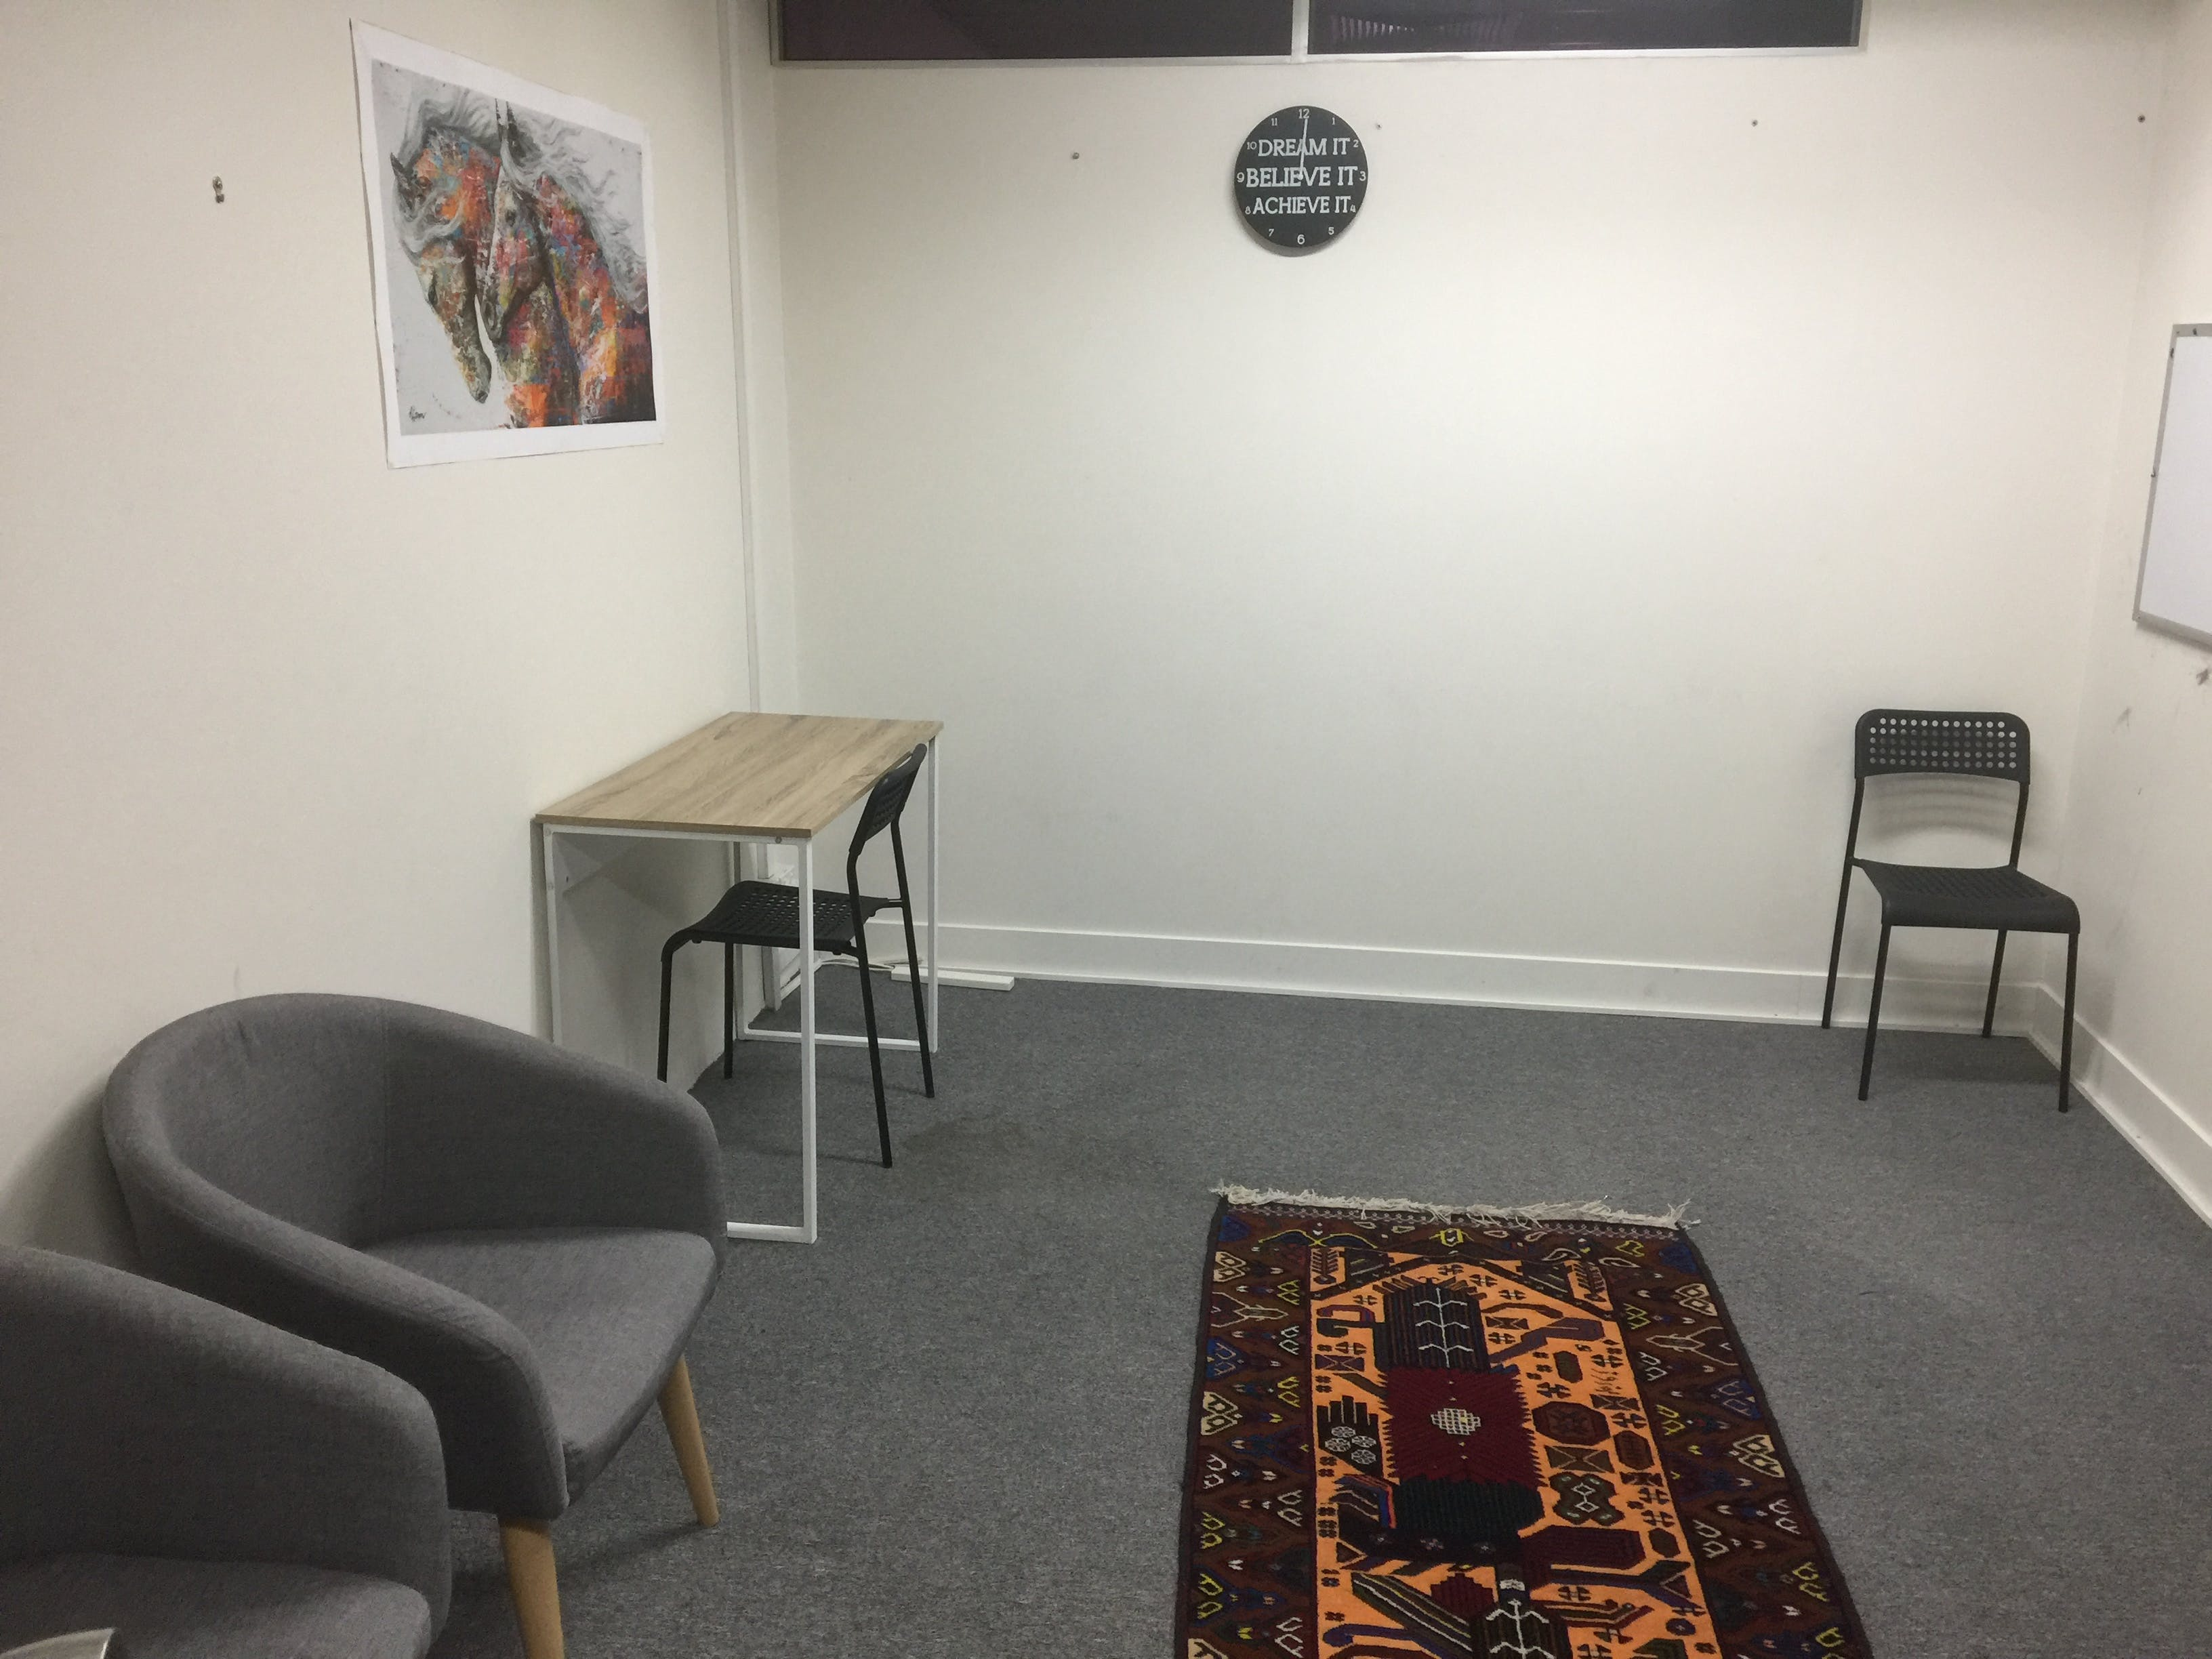 Shared office at Auburn tutoring and office space, image 5